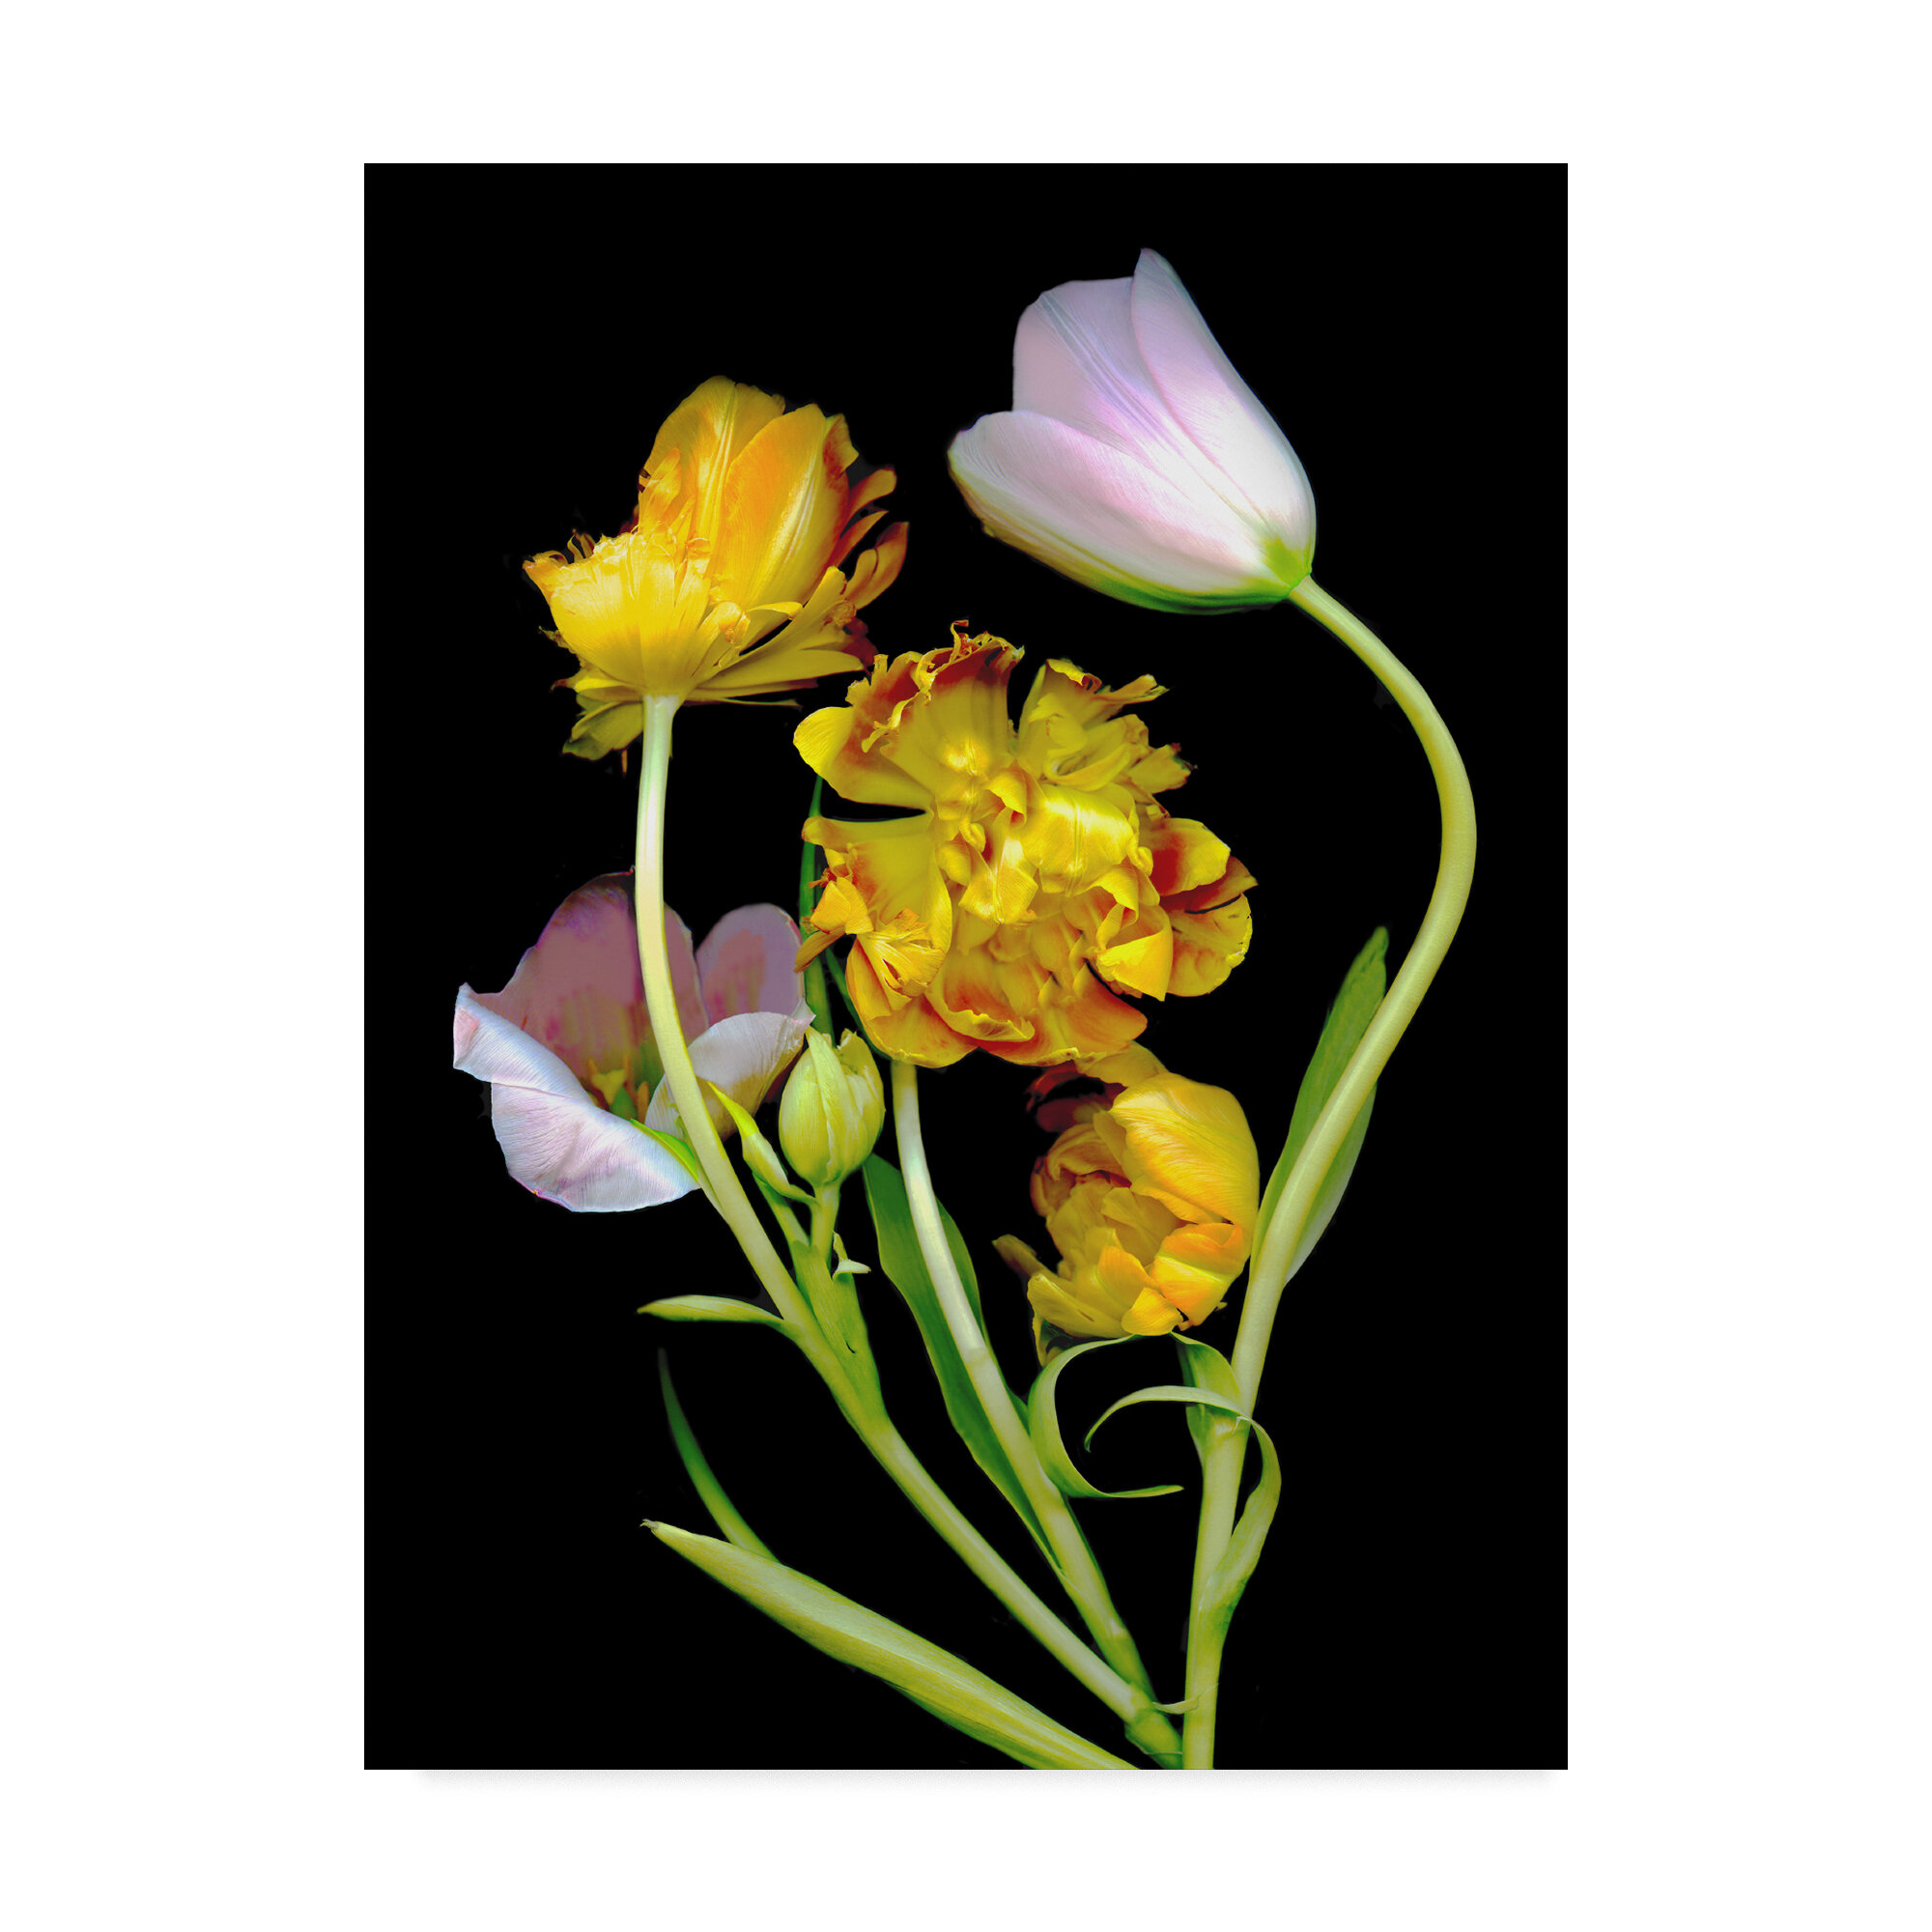 Trademark Art Tulips 2 Graphic Art Print On Wrapped Canvas Wayfair